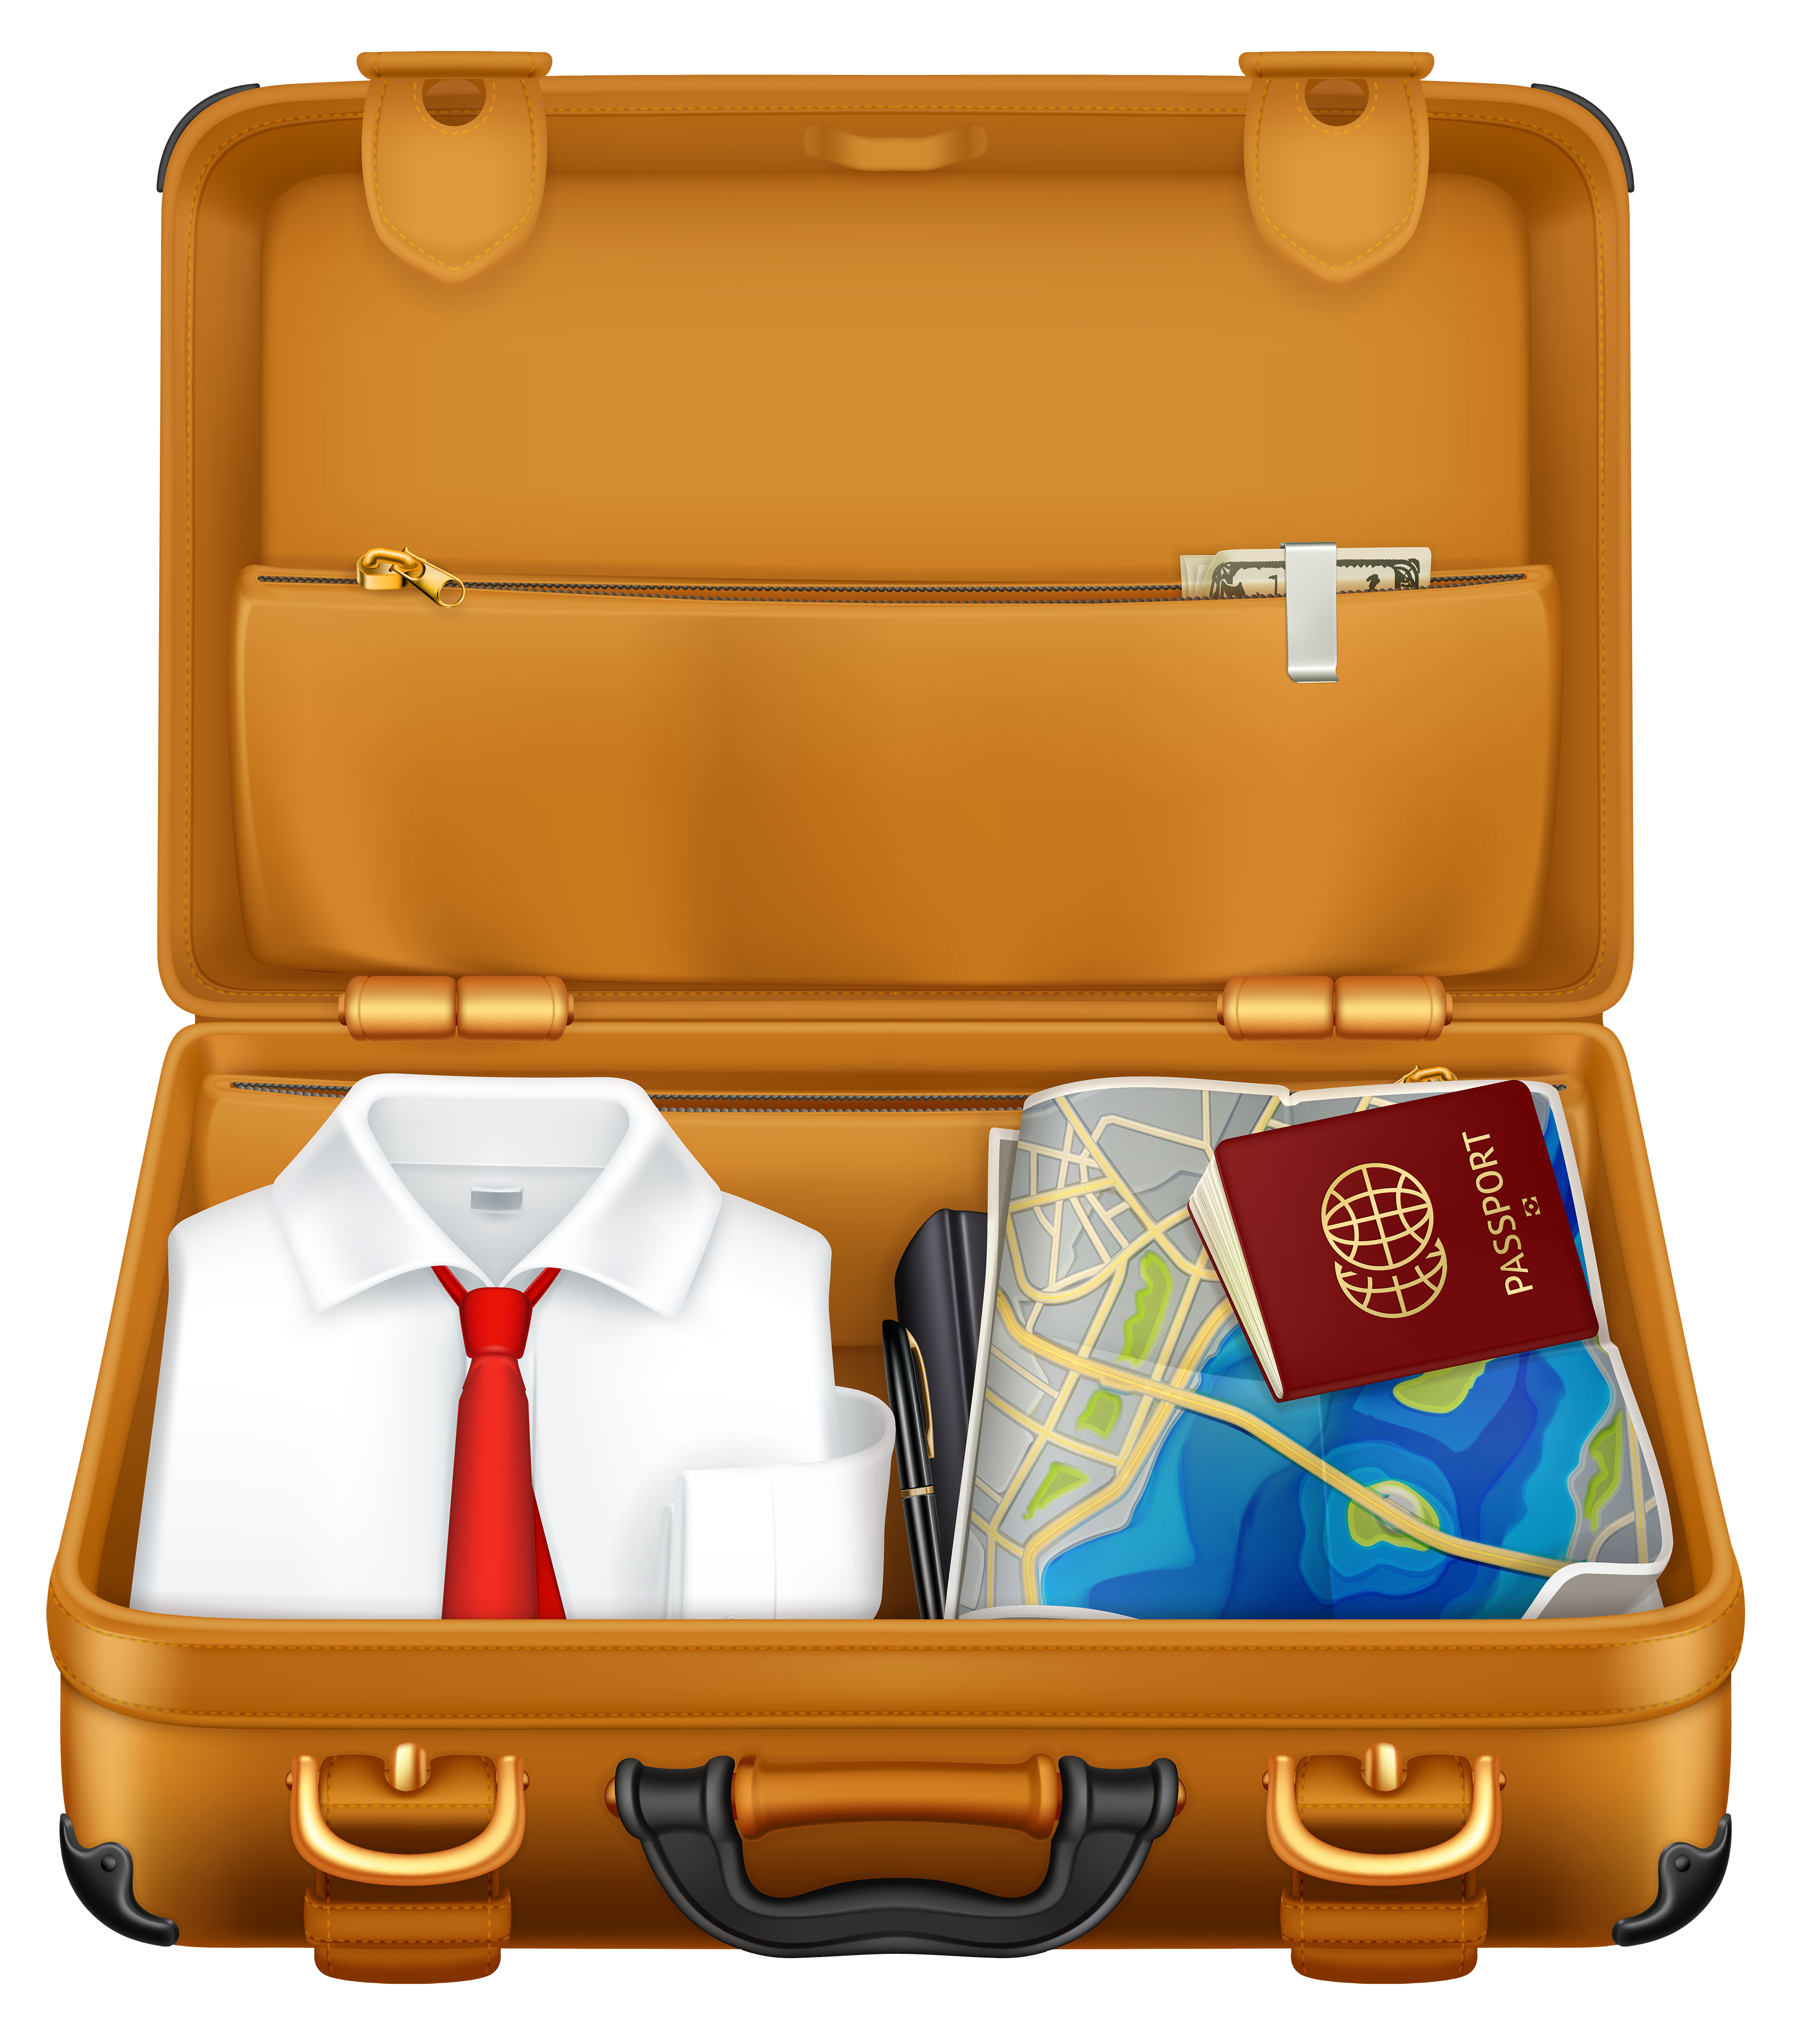 Luggage clipart passport. Brown suitcase with clothes